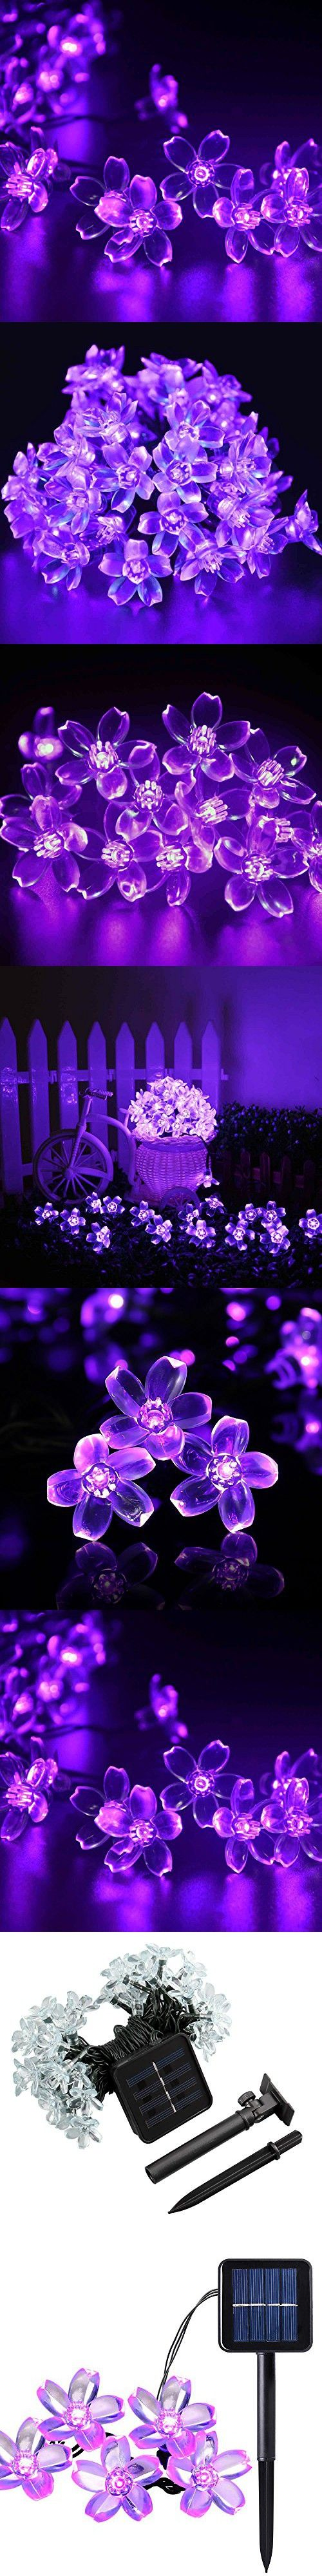 Qedertek Solar String Lights, 23Ft Outdoor Waterproof 50 LED Cherry Flowers Fairy Lighting Decorations for Christmas, Patio, Lawn, Fence, Garden, Holiday (Purple)